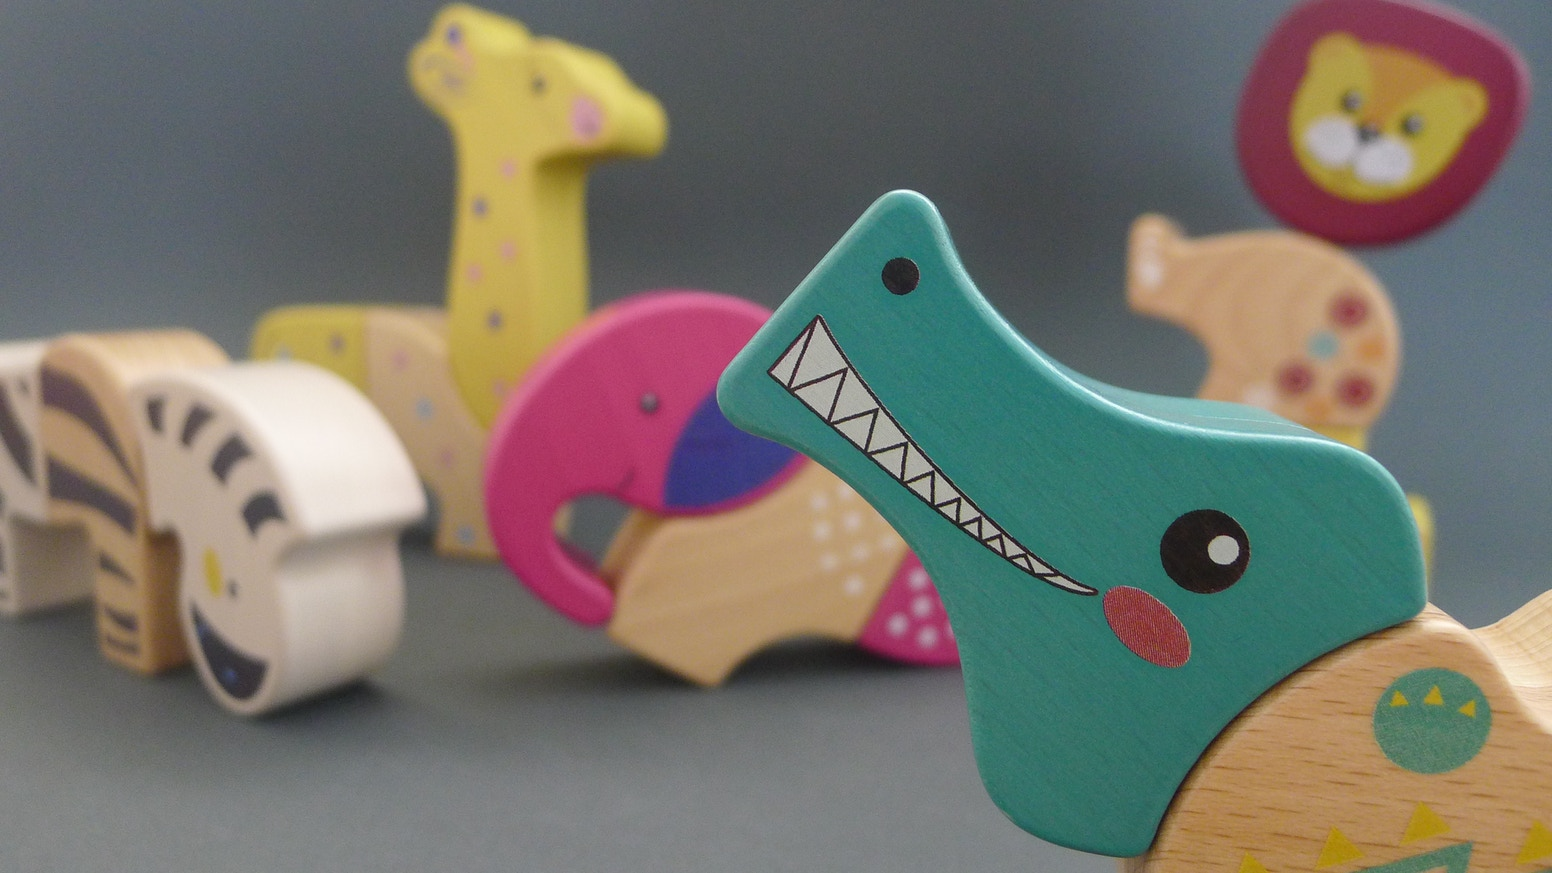 df695946d62 WUMBA - Magnetic Wooden Toys Featuring Switchable Blocks by Sergei ...